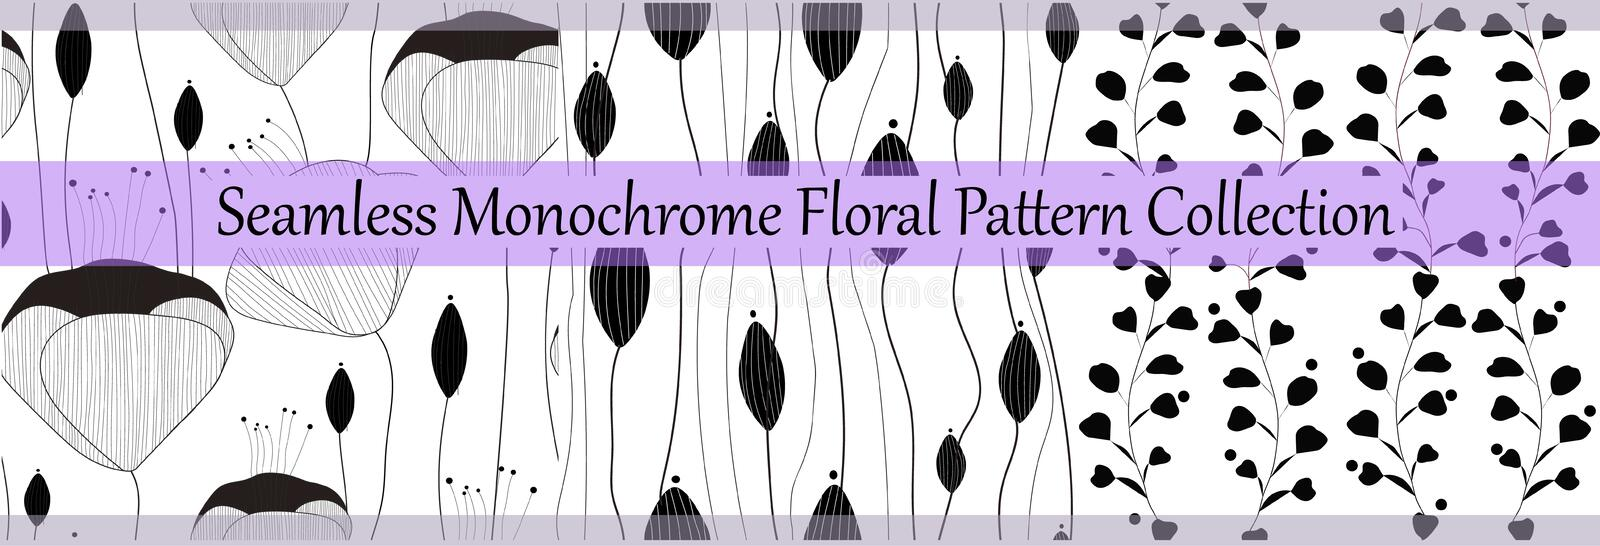 Vector seamless monochrome floral pattern collection. Elegant hand drawn textures for prints,paper, wrapping, textile. royalty free illustration